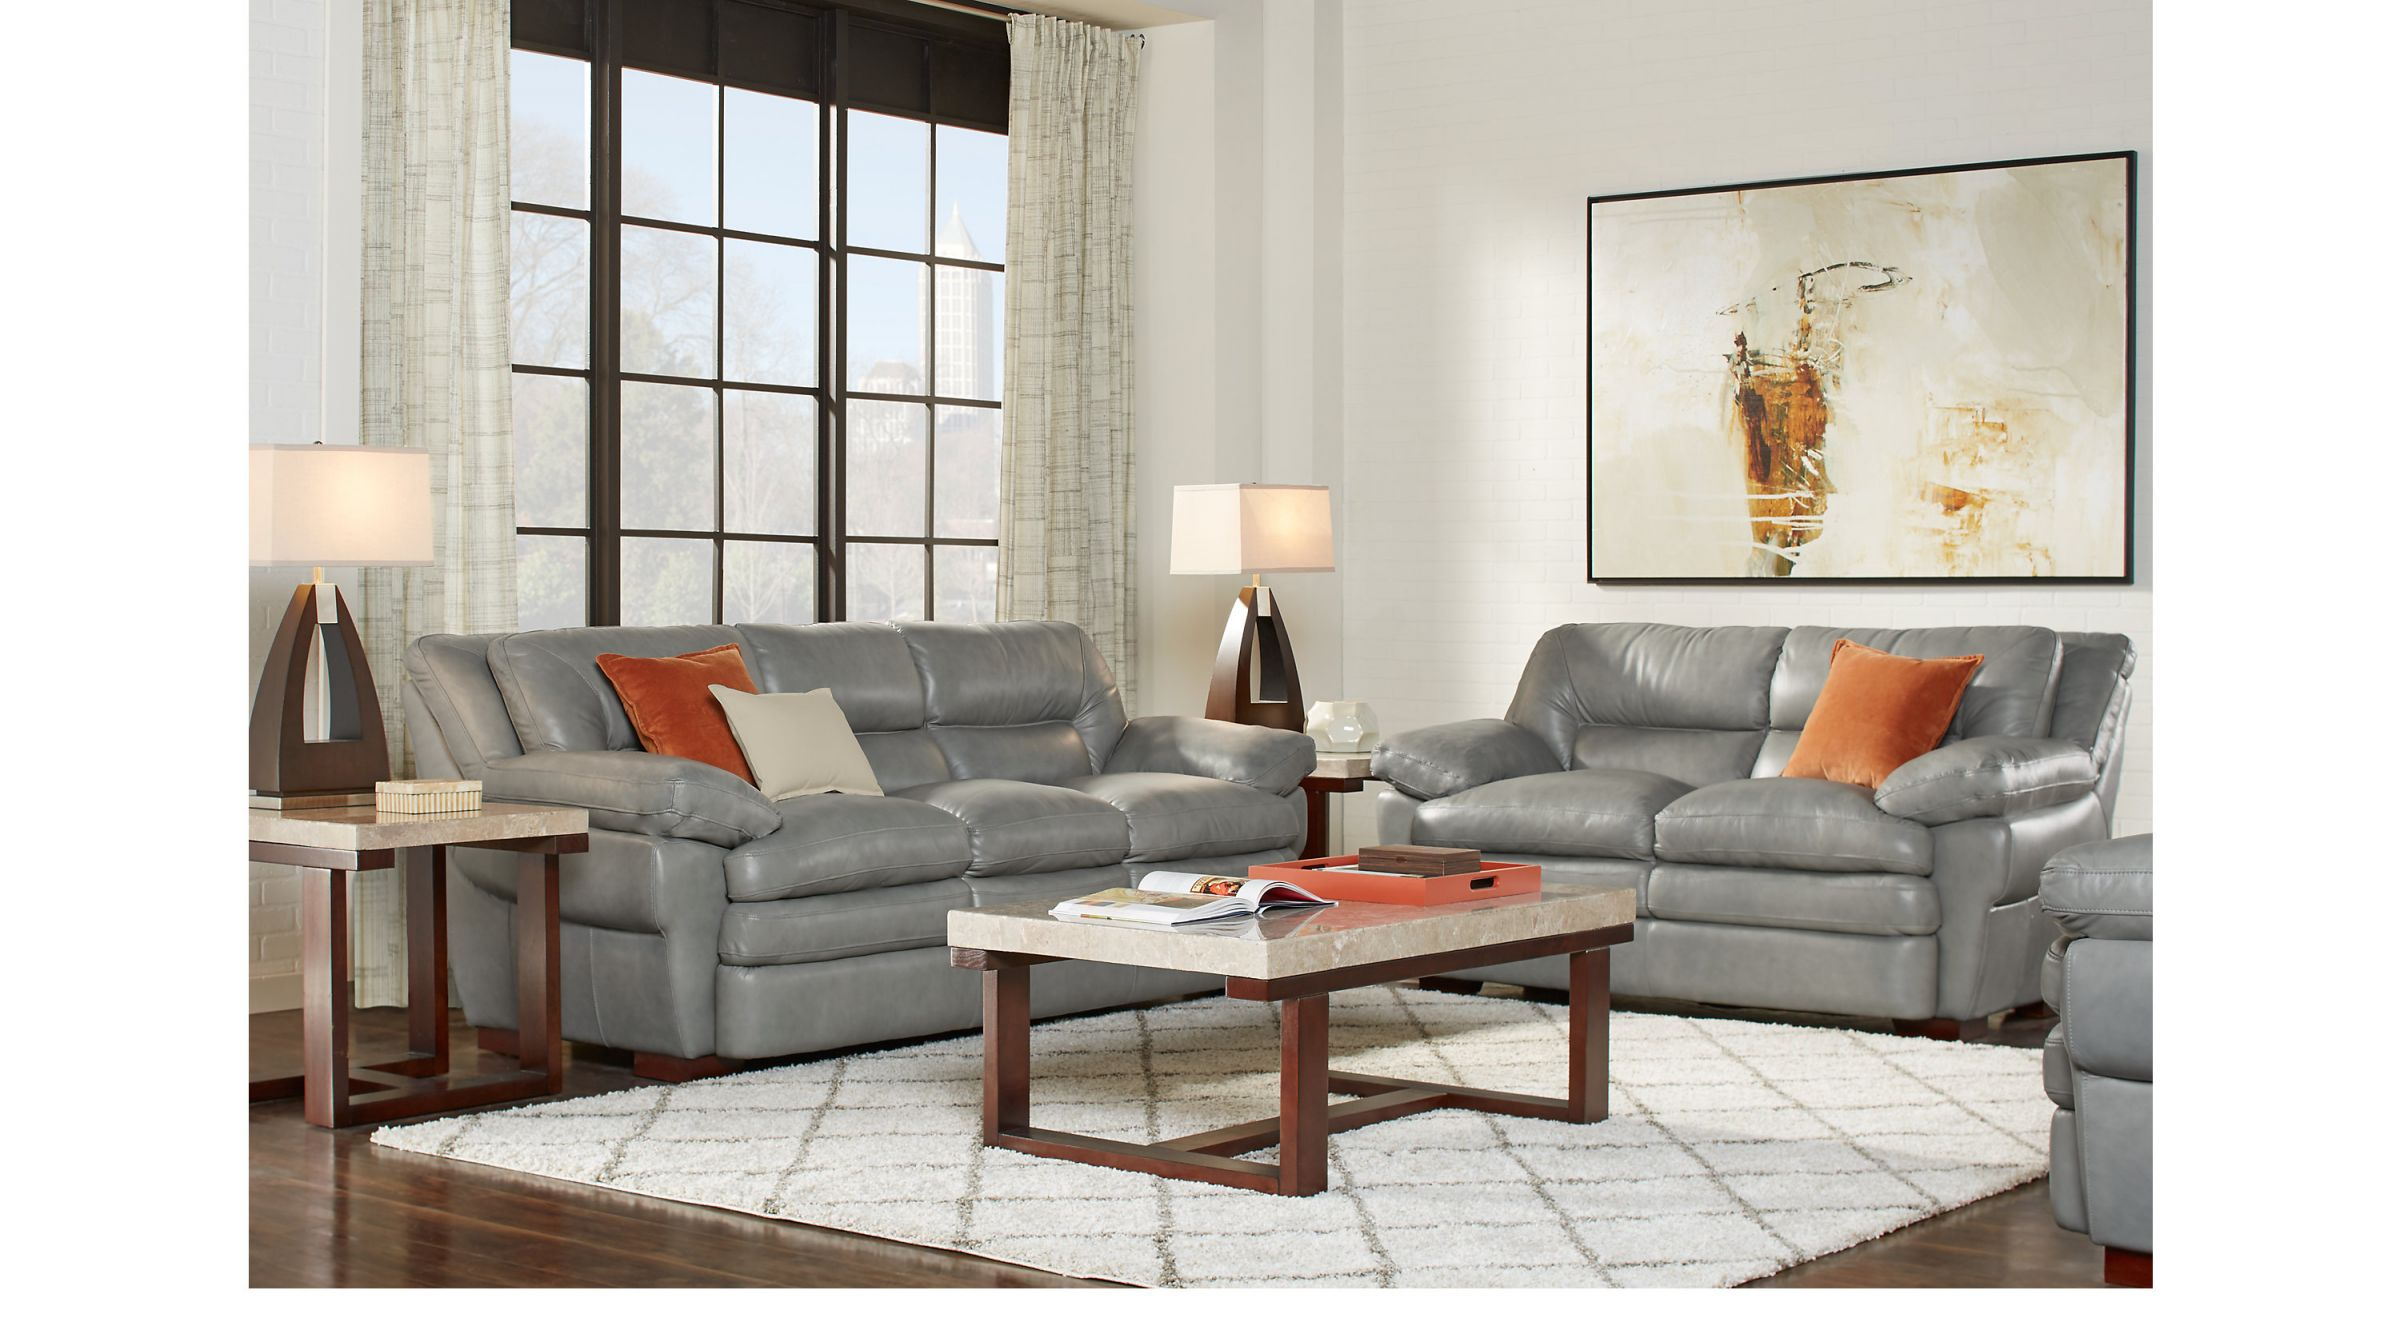 Aventino Gray Leather 5 Pc Living Room regarding Leather Living Room Sets